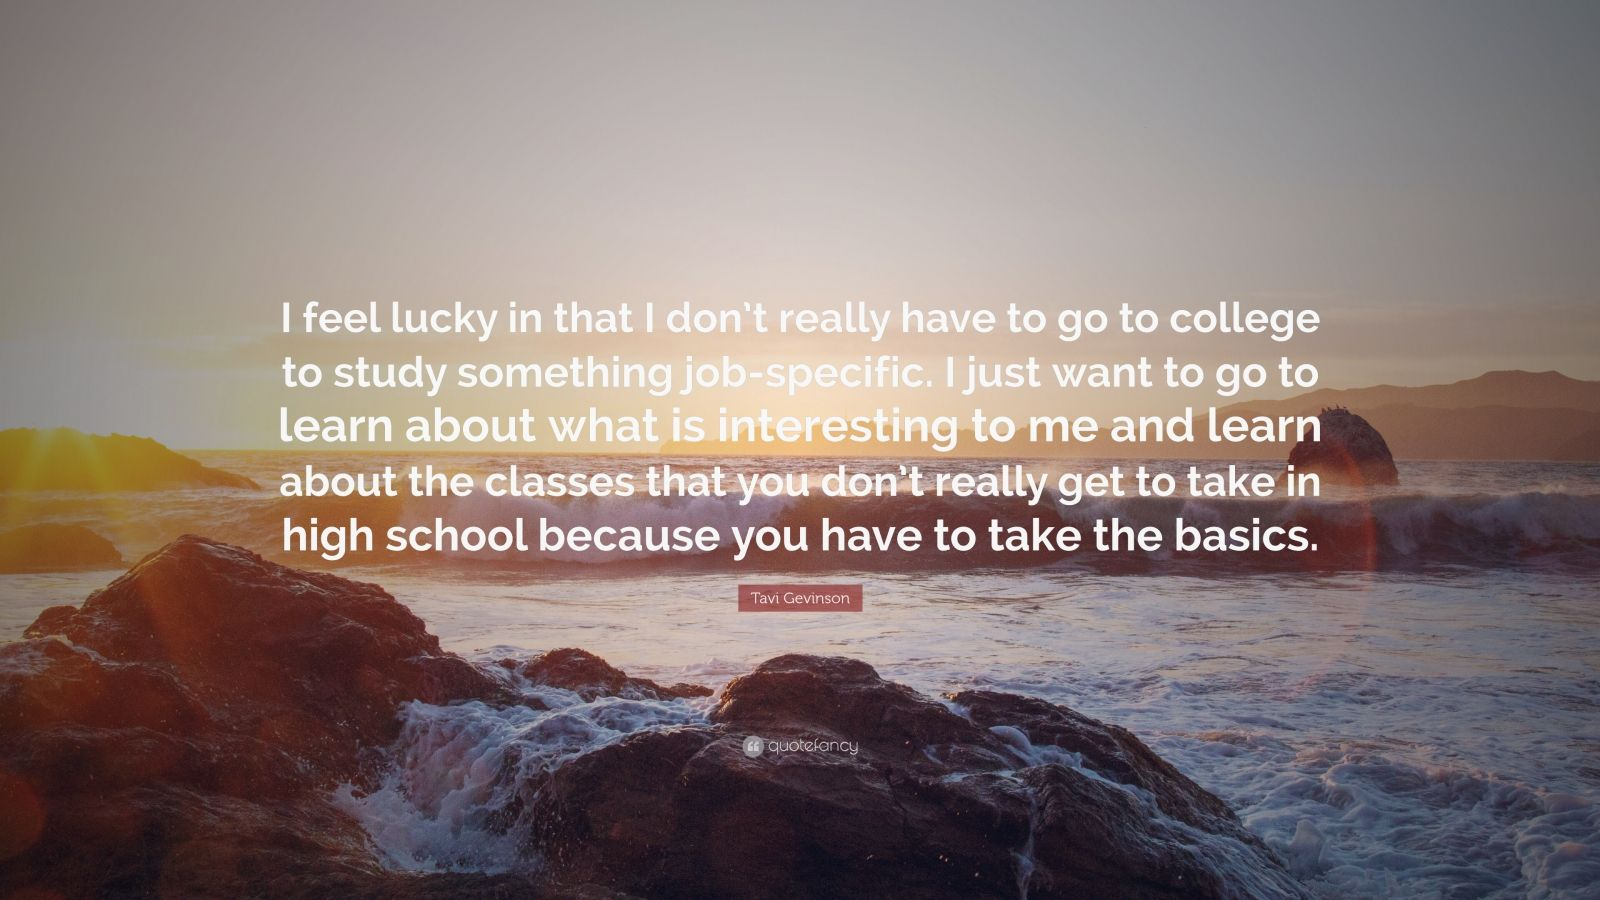 "Tavi Gevinson Quote: ""I feel lucky in that I don't really have to go to college to study something job-specific. I just want to go to learn about what is interesting to me and learn about the classes that you don't really get to take in high school because you have to take the basics."""